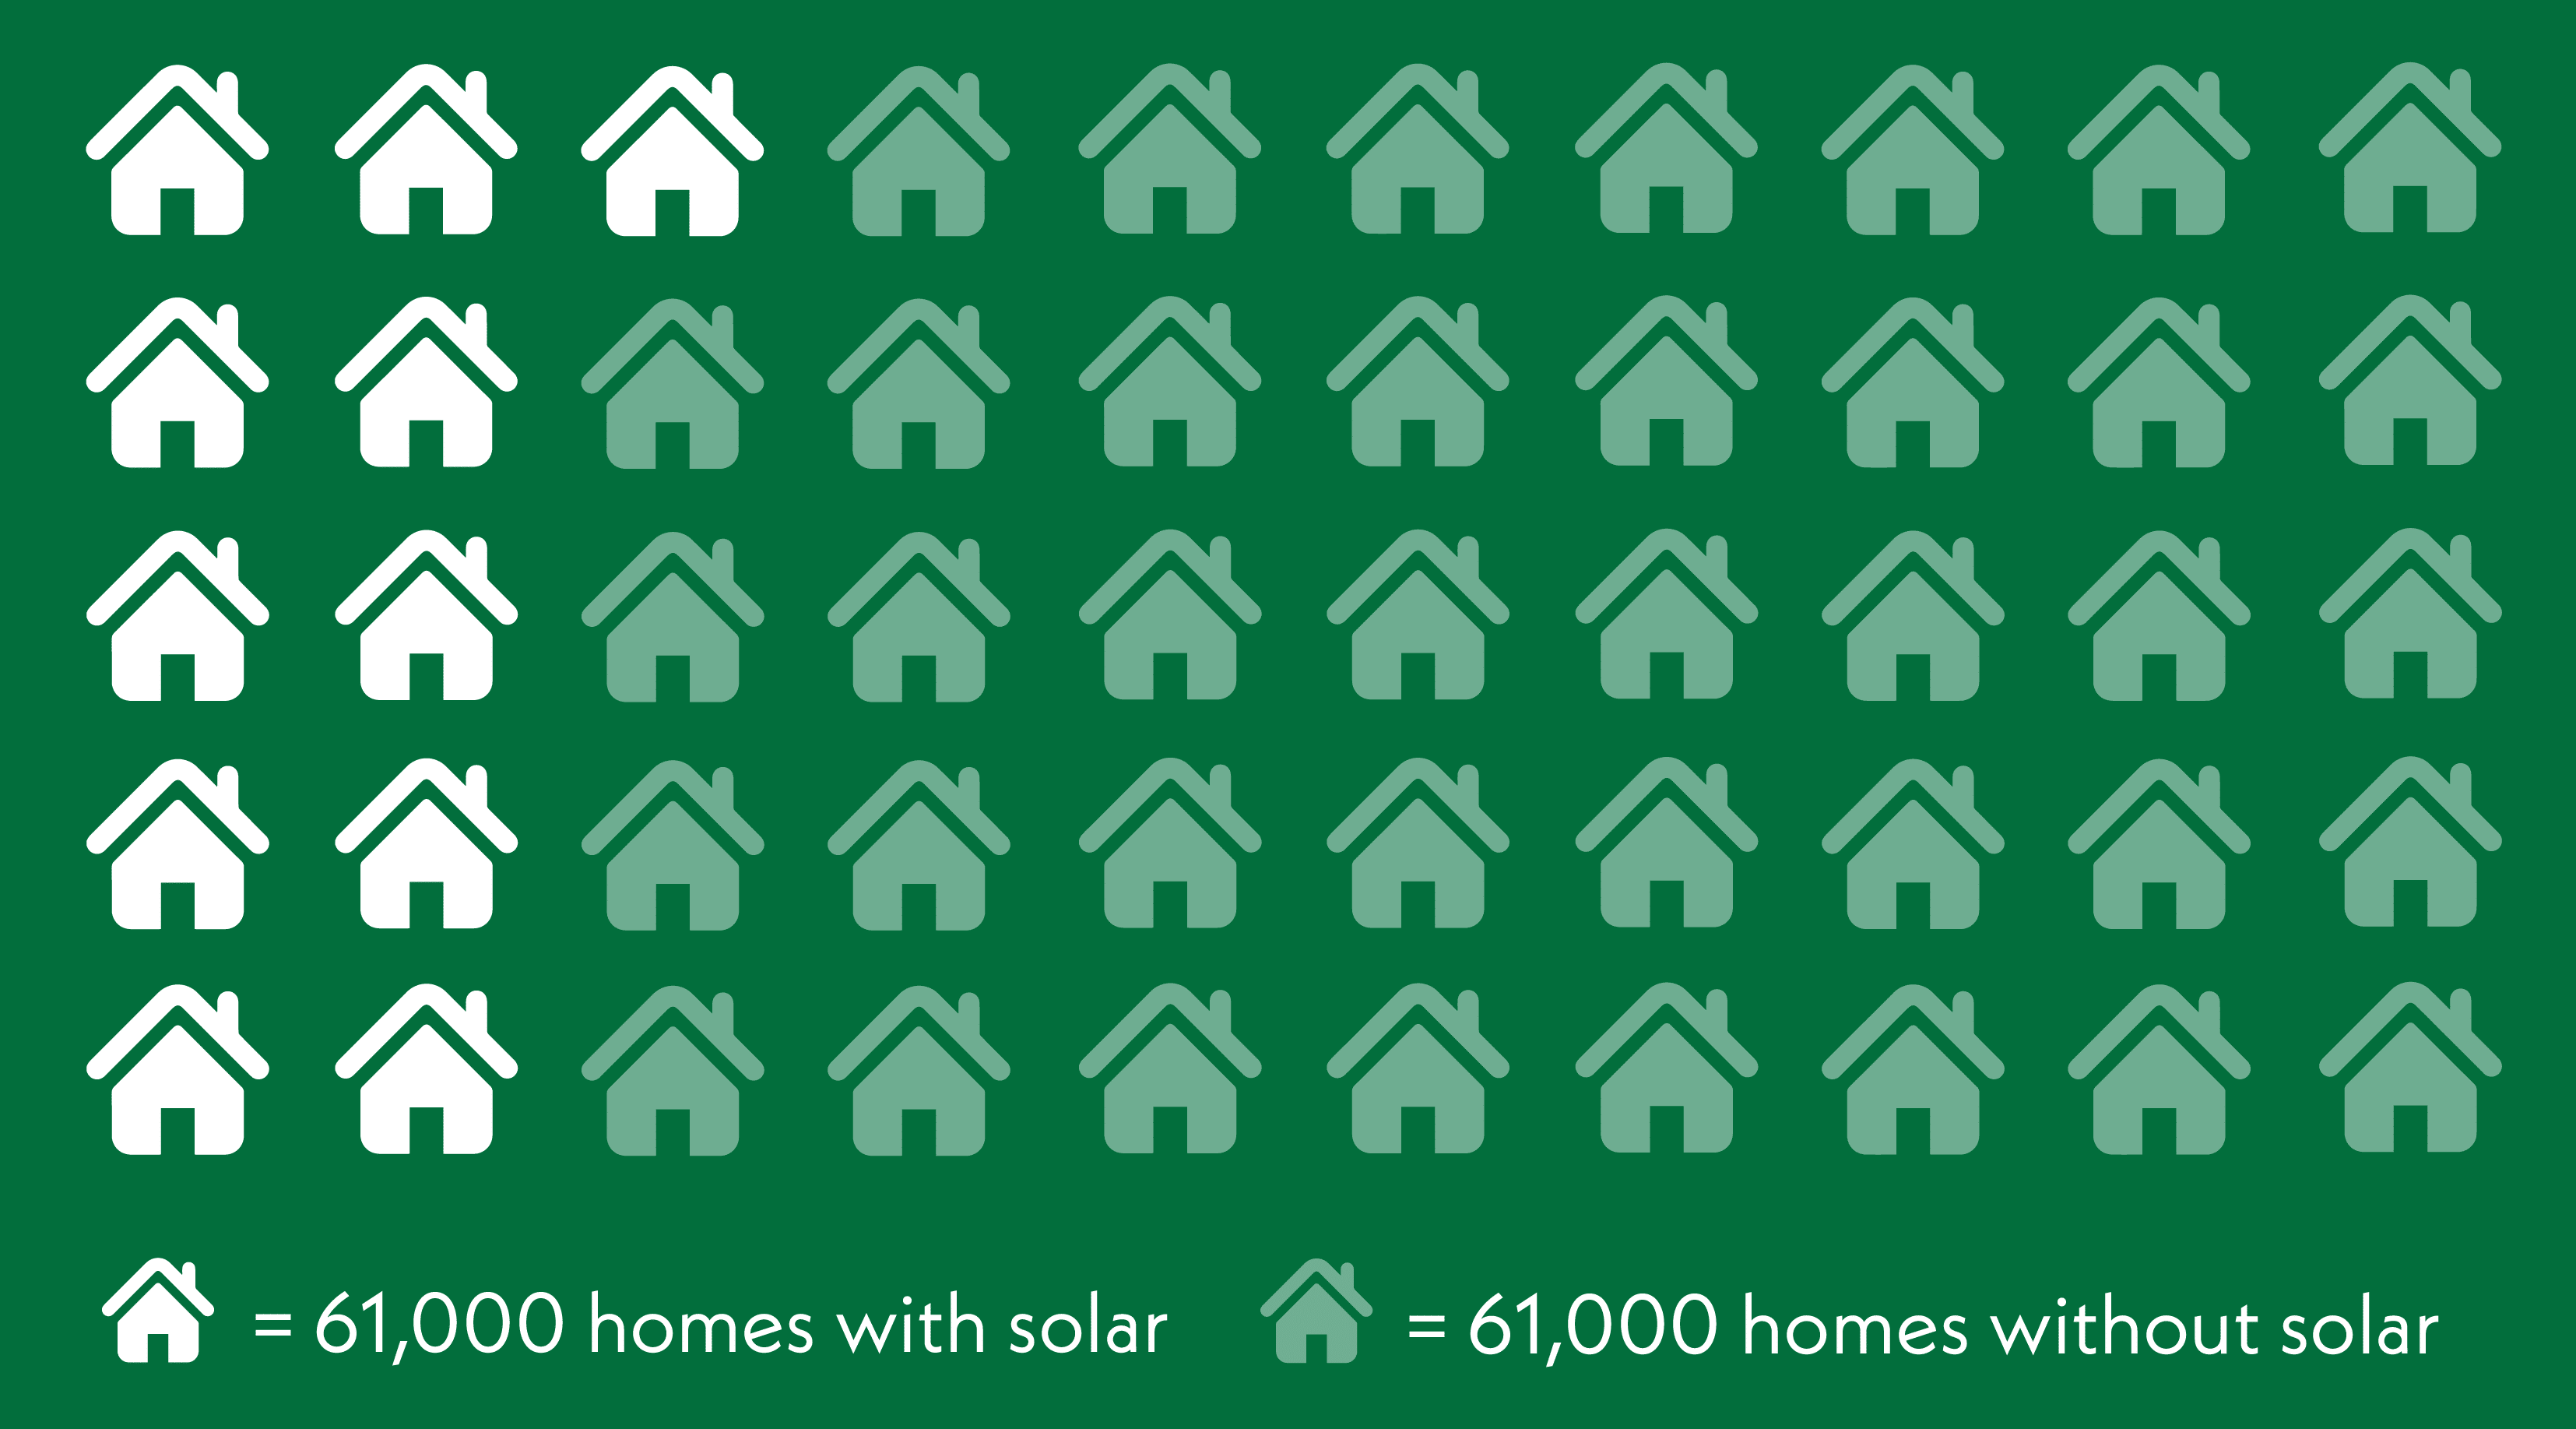 60000 homes with solar vs 61000 homes without solar